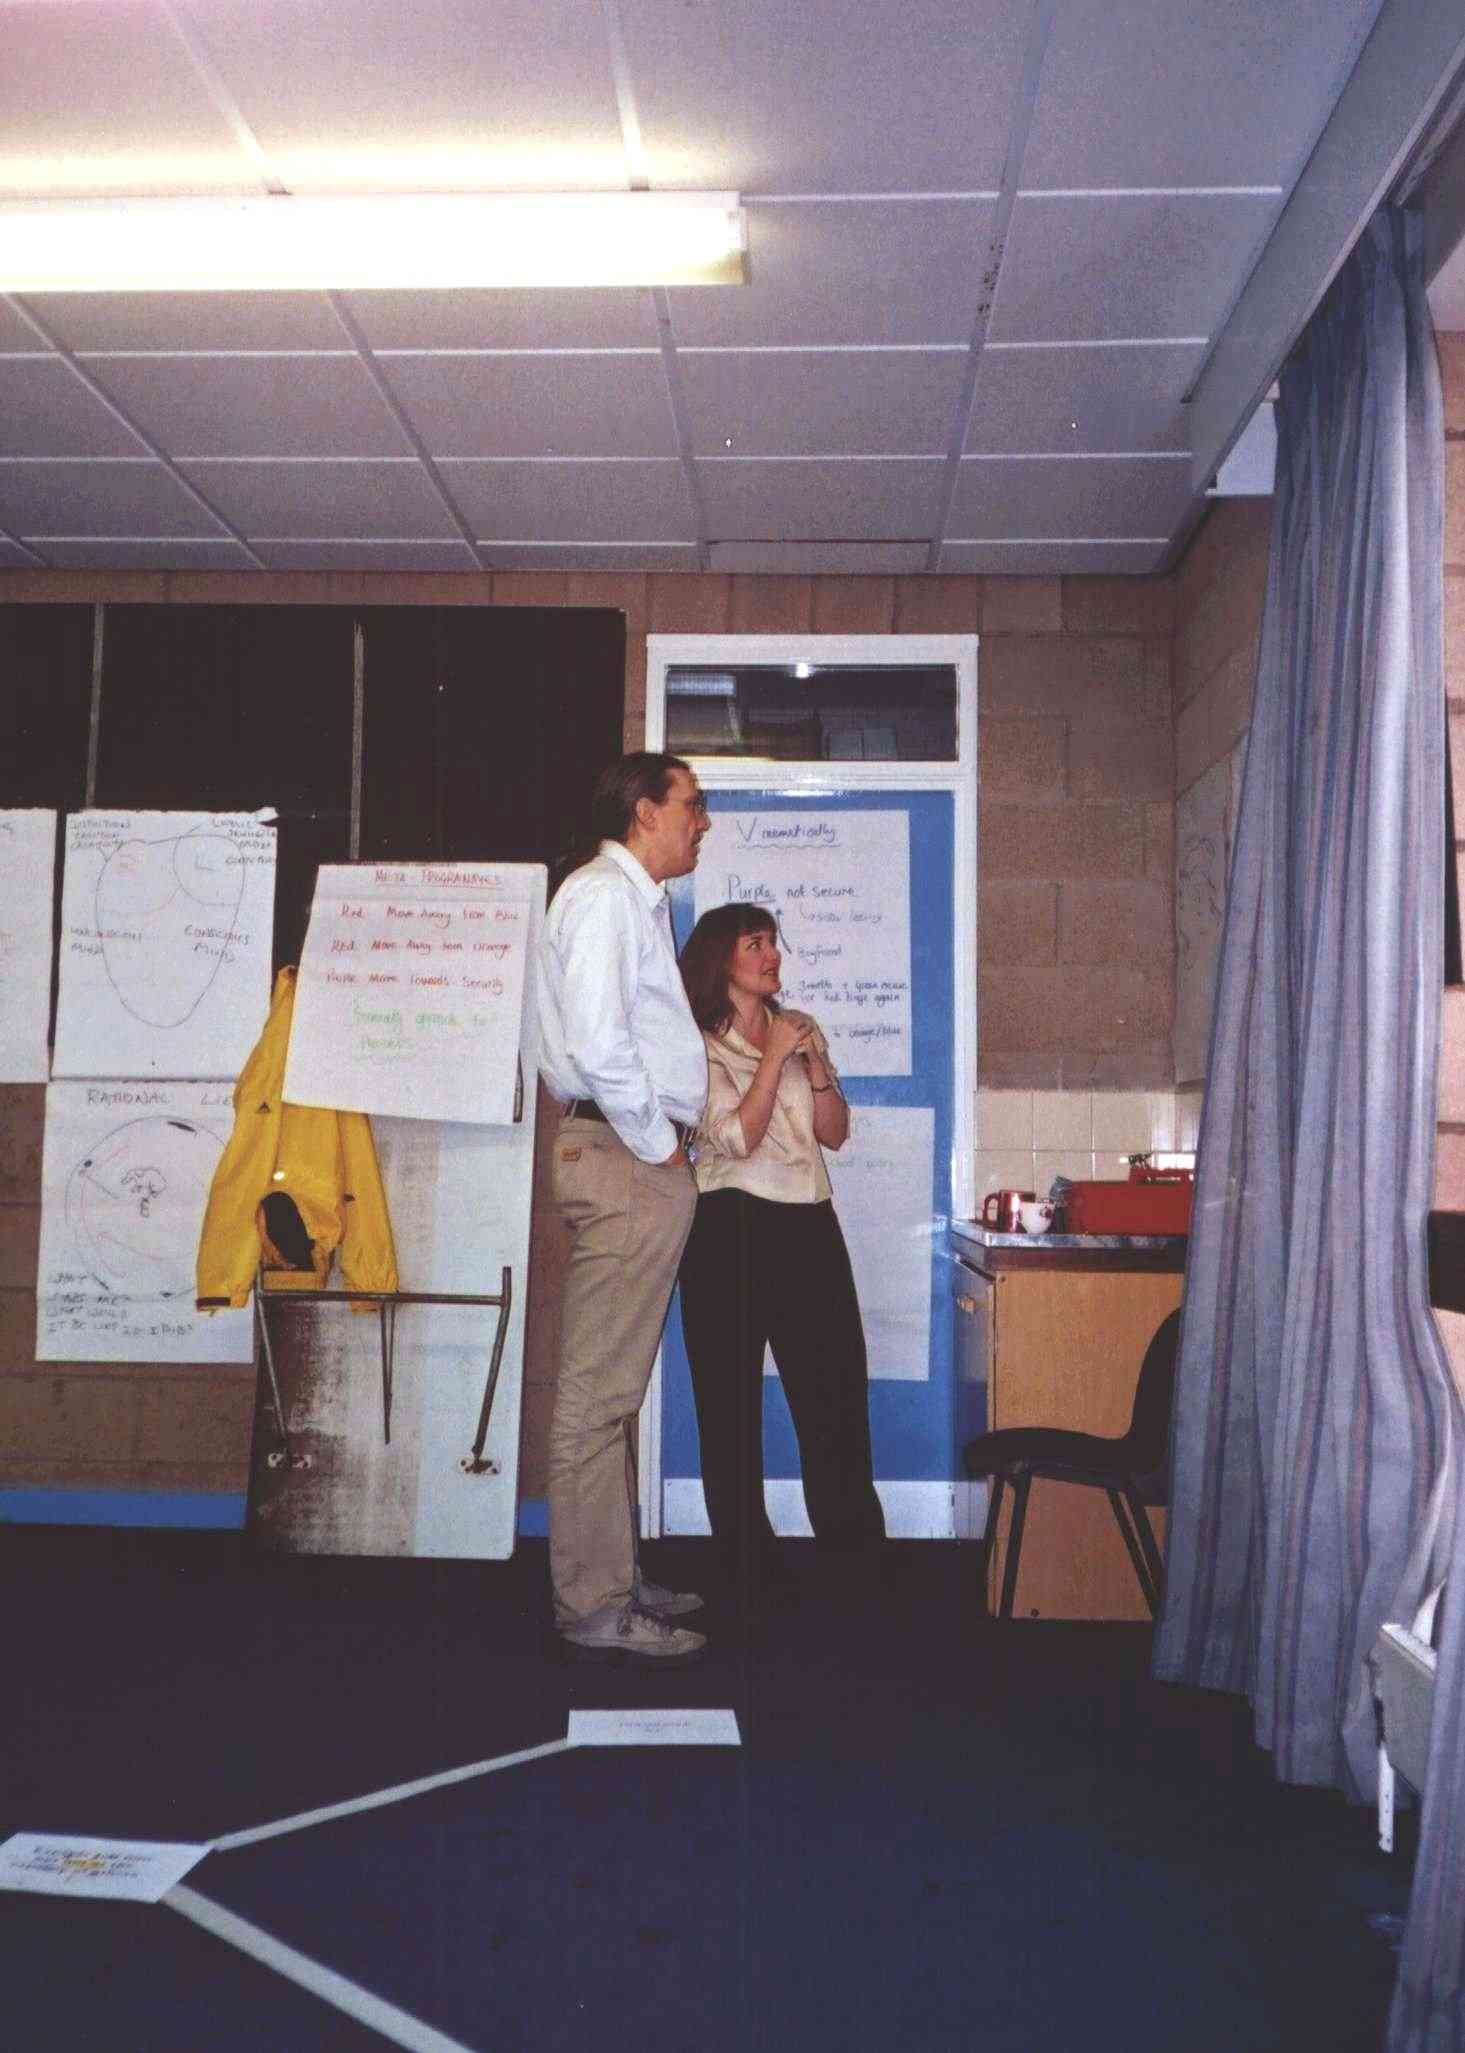 July 2001: David Burnby (Common Purpose in Hull) and Jennifer Crossland reviewing flip charts